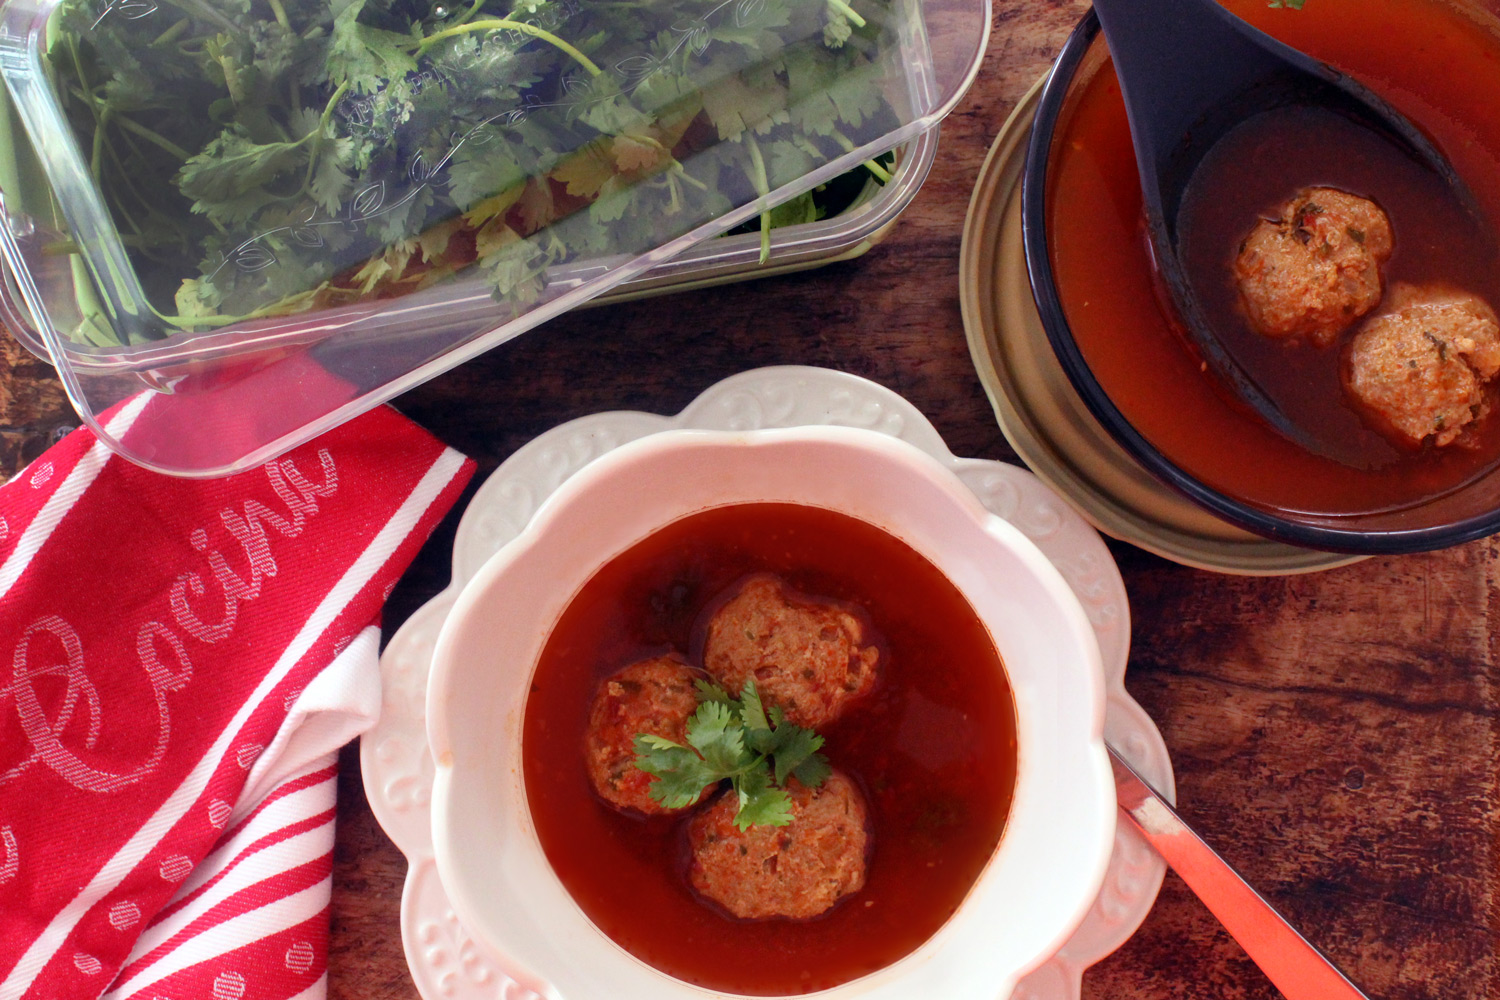 Sopa de albondiga with turkey meatballs